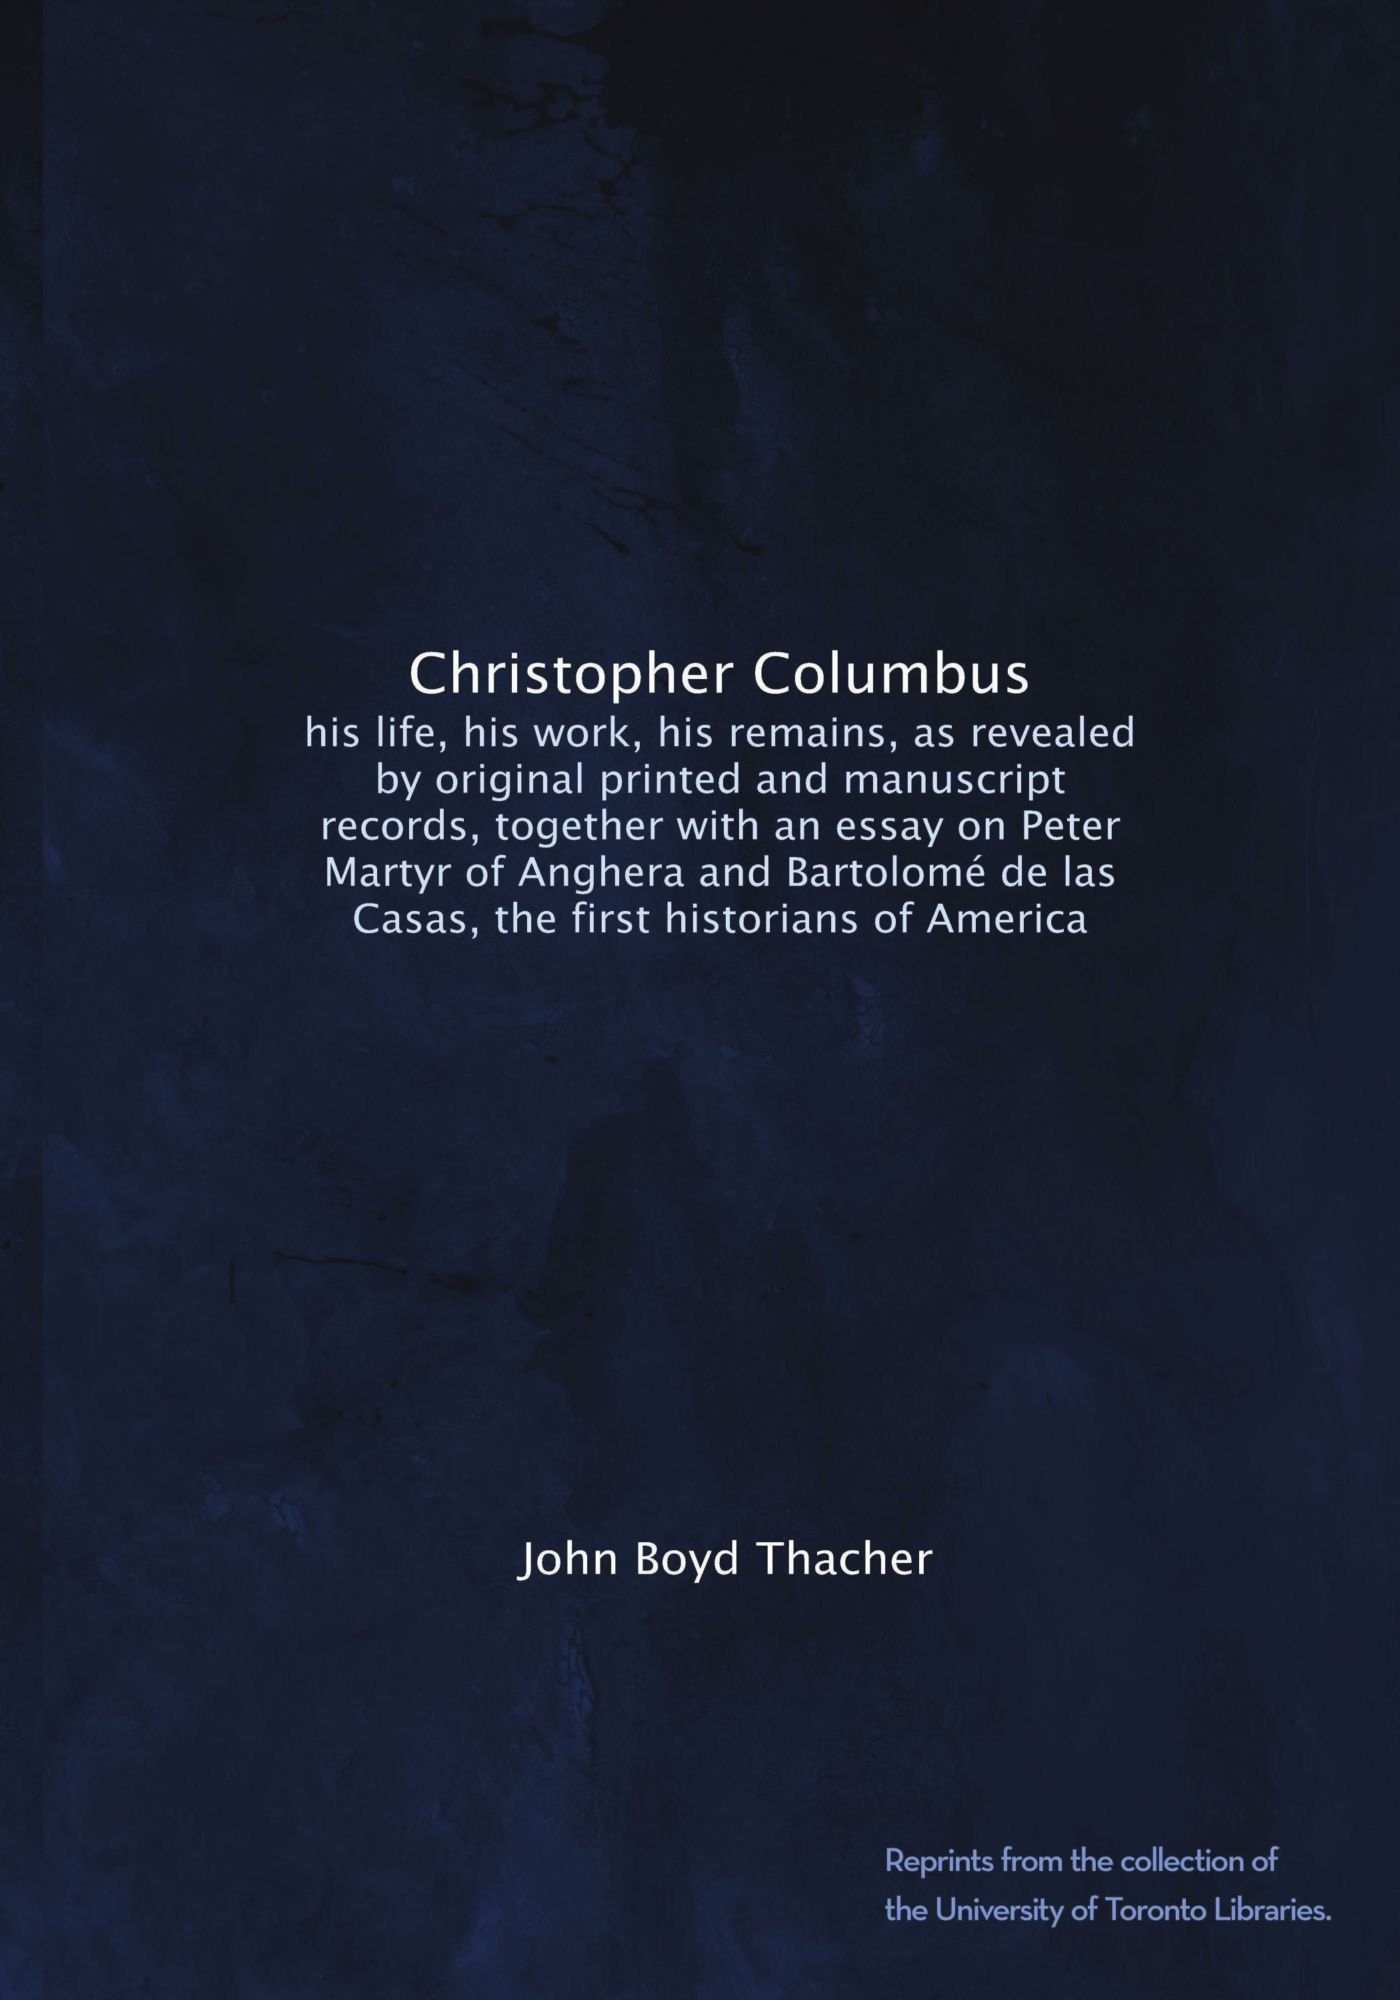 columbus essay event galleries ar christopher columbus good or bad  christopher columbus his life his work his remains as revealed christopher columbus his life his work